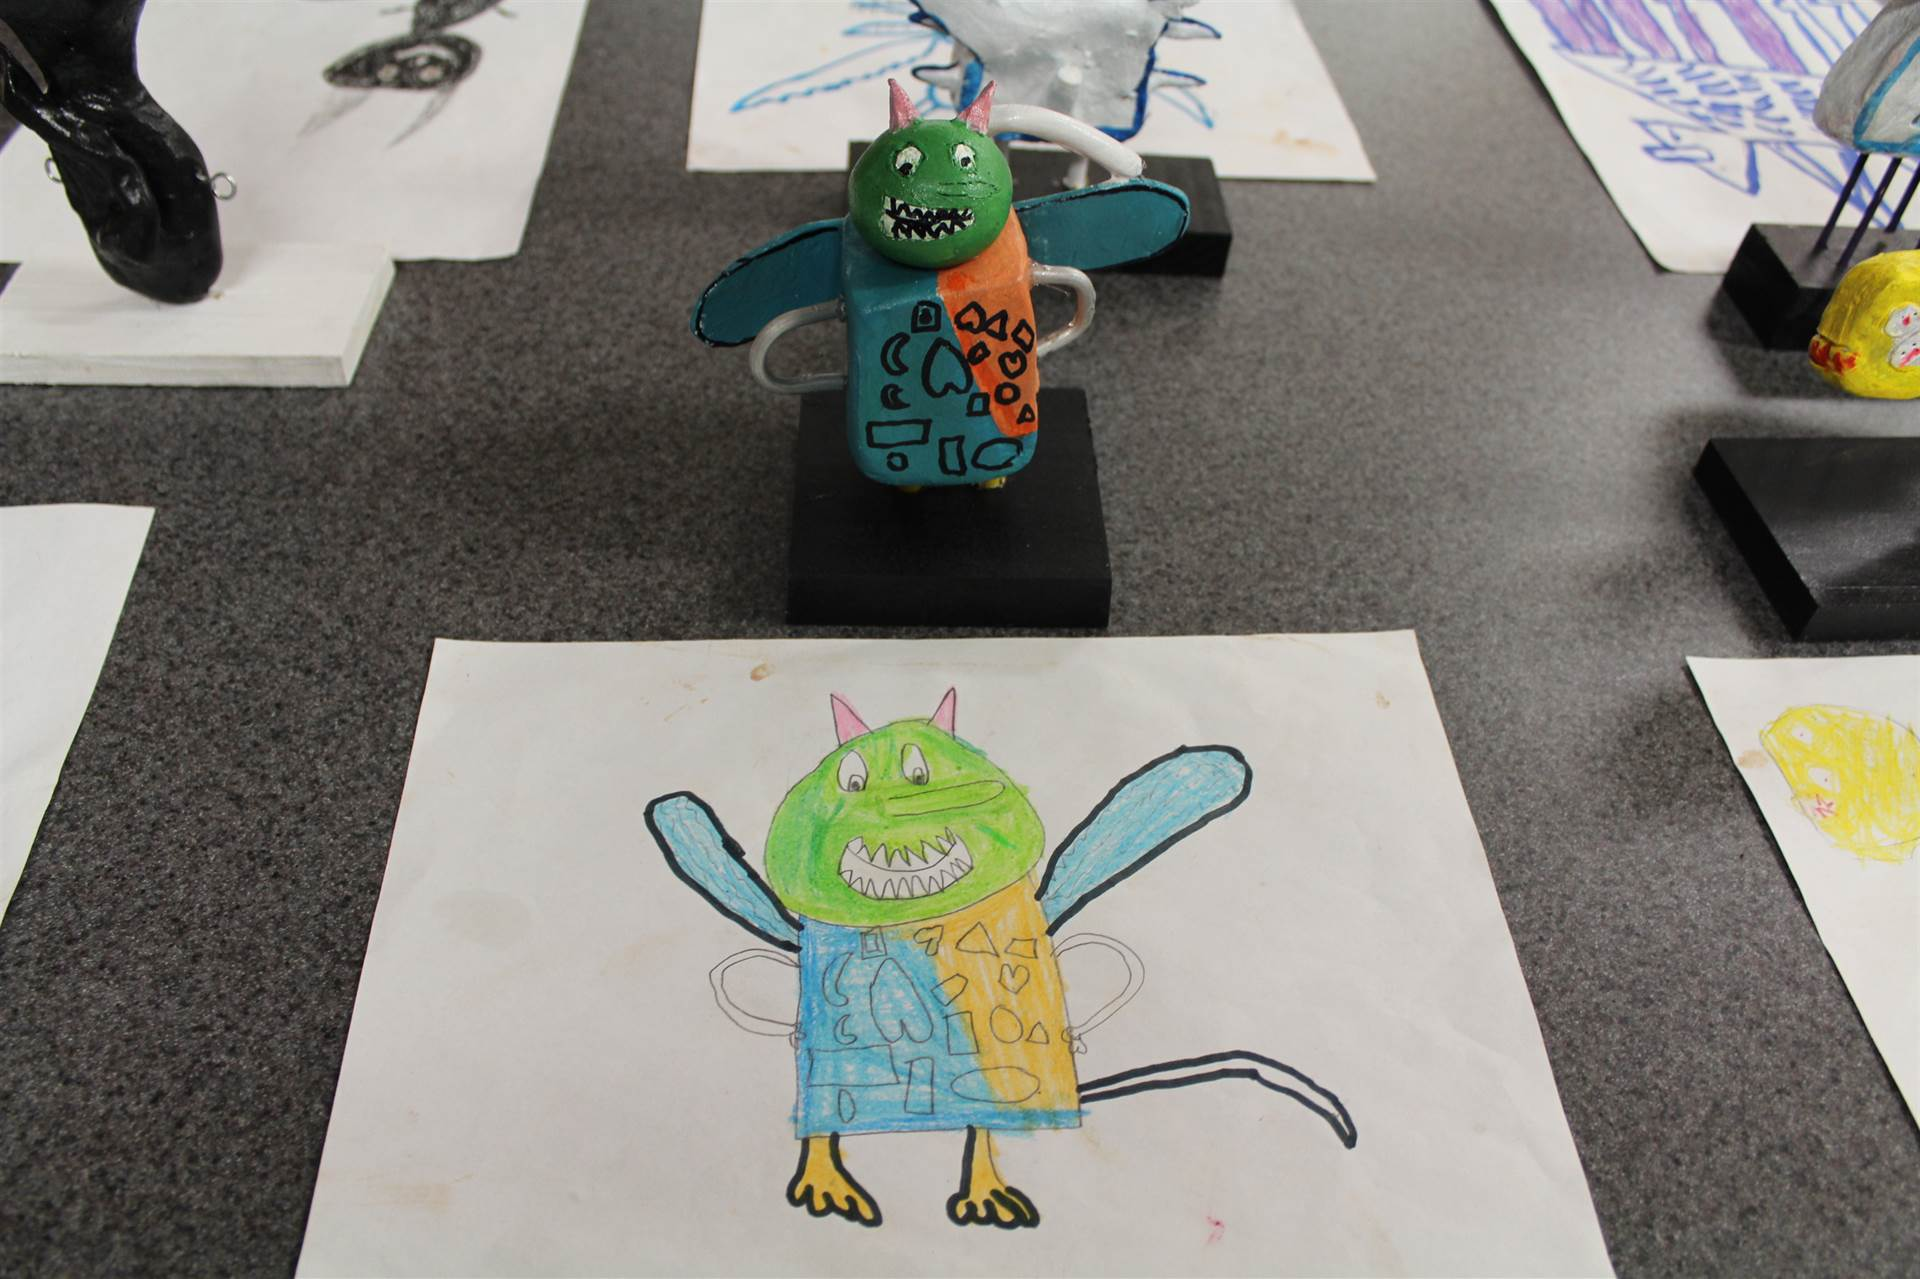 monster 3 d sculpture next to drawn picture 21